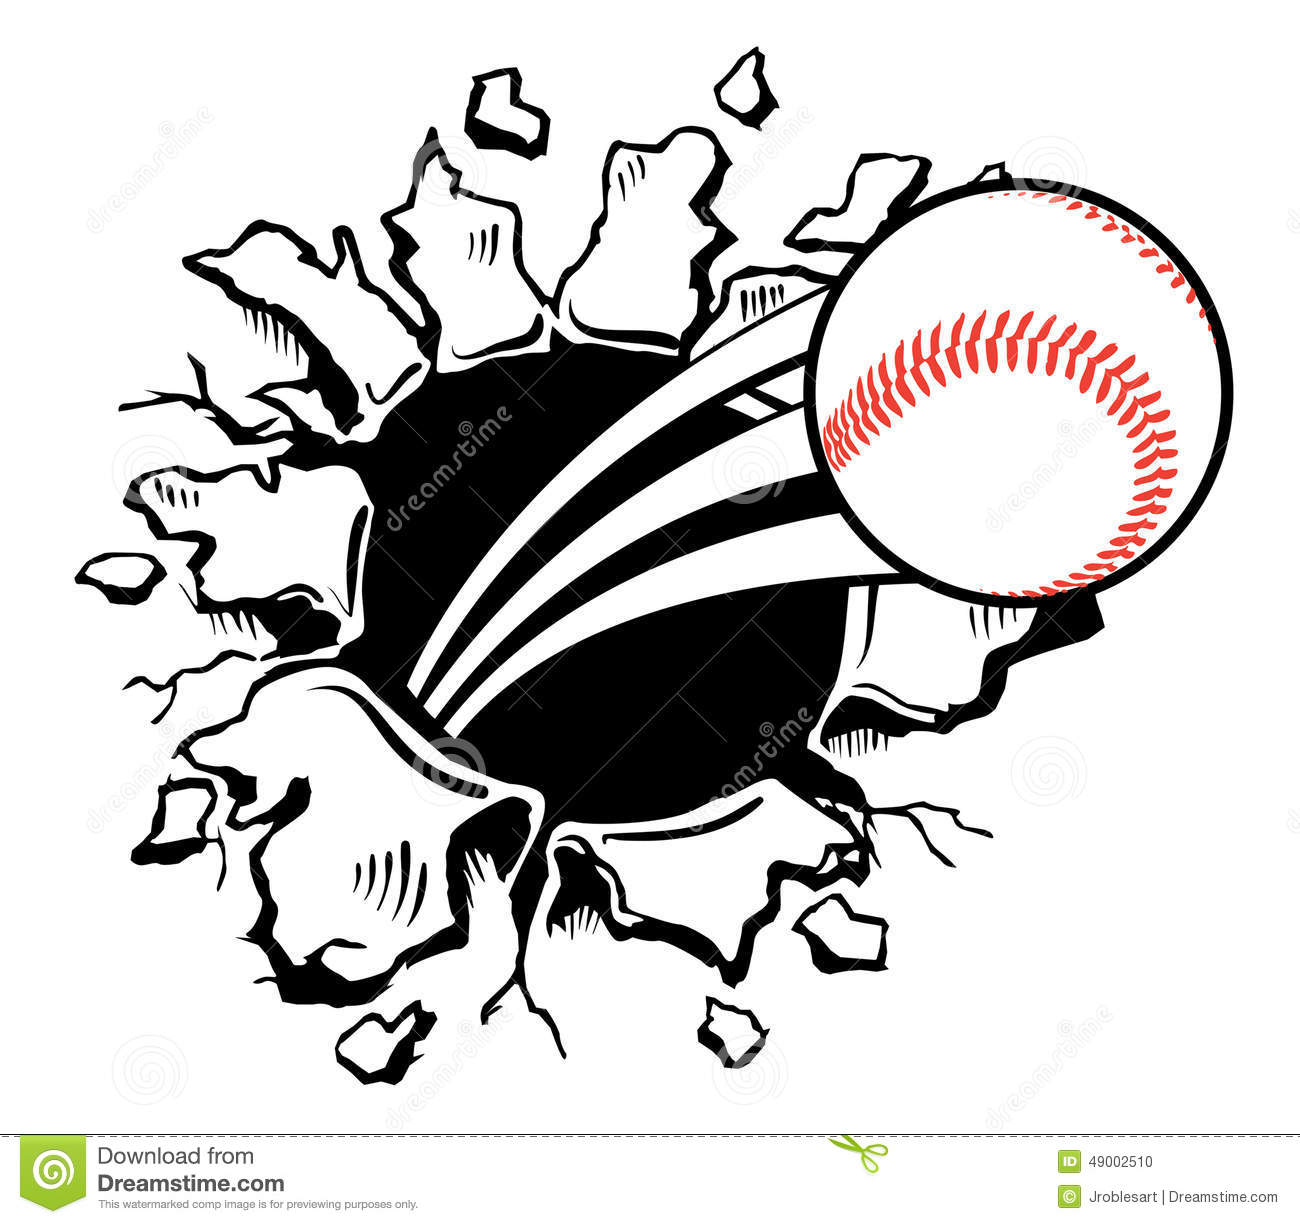 Rose Die Cut Vinyl Decal Pv2061 in addition Detroit Tigers Cap Logo 1922present Iron On Transfers P 17899 in addition Echo In My Heart in addition Stock Illustration Baseball Busting Wall Sports Violently Image49002510 also 443041682075914228. on softball wall decals